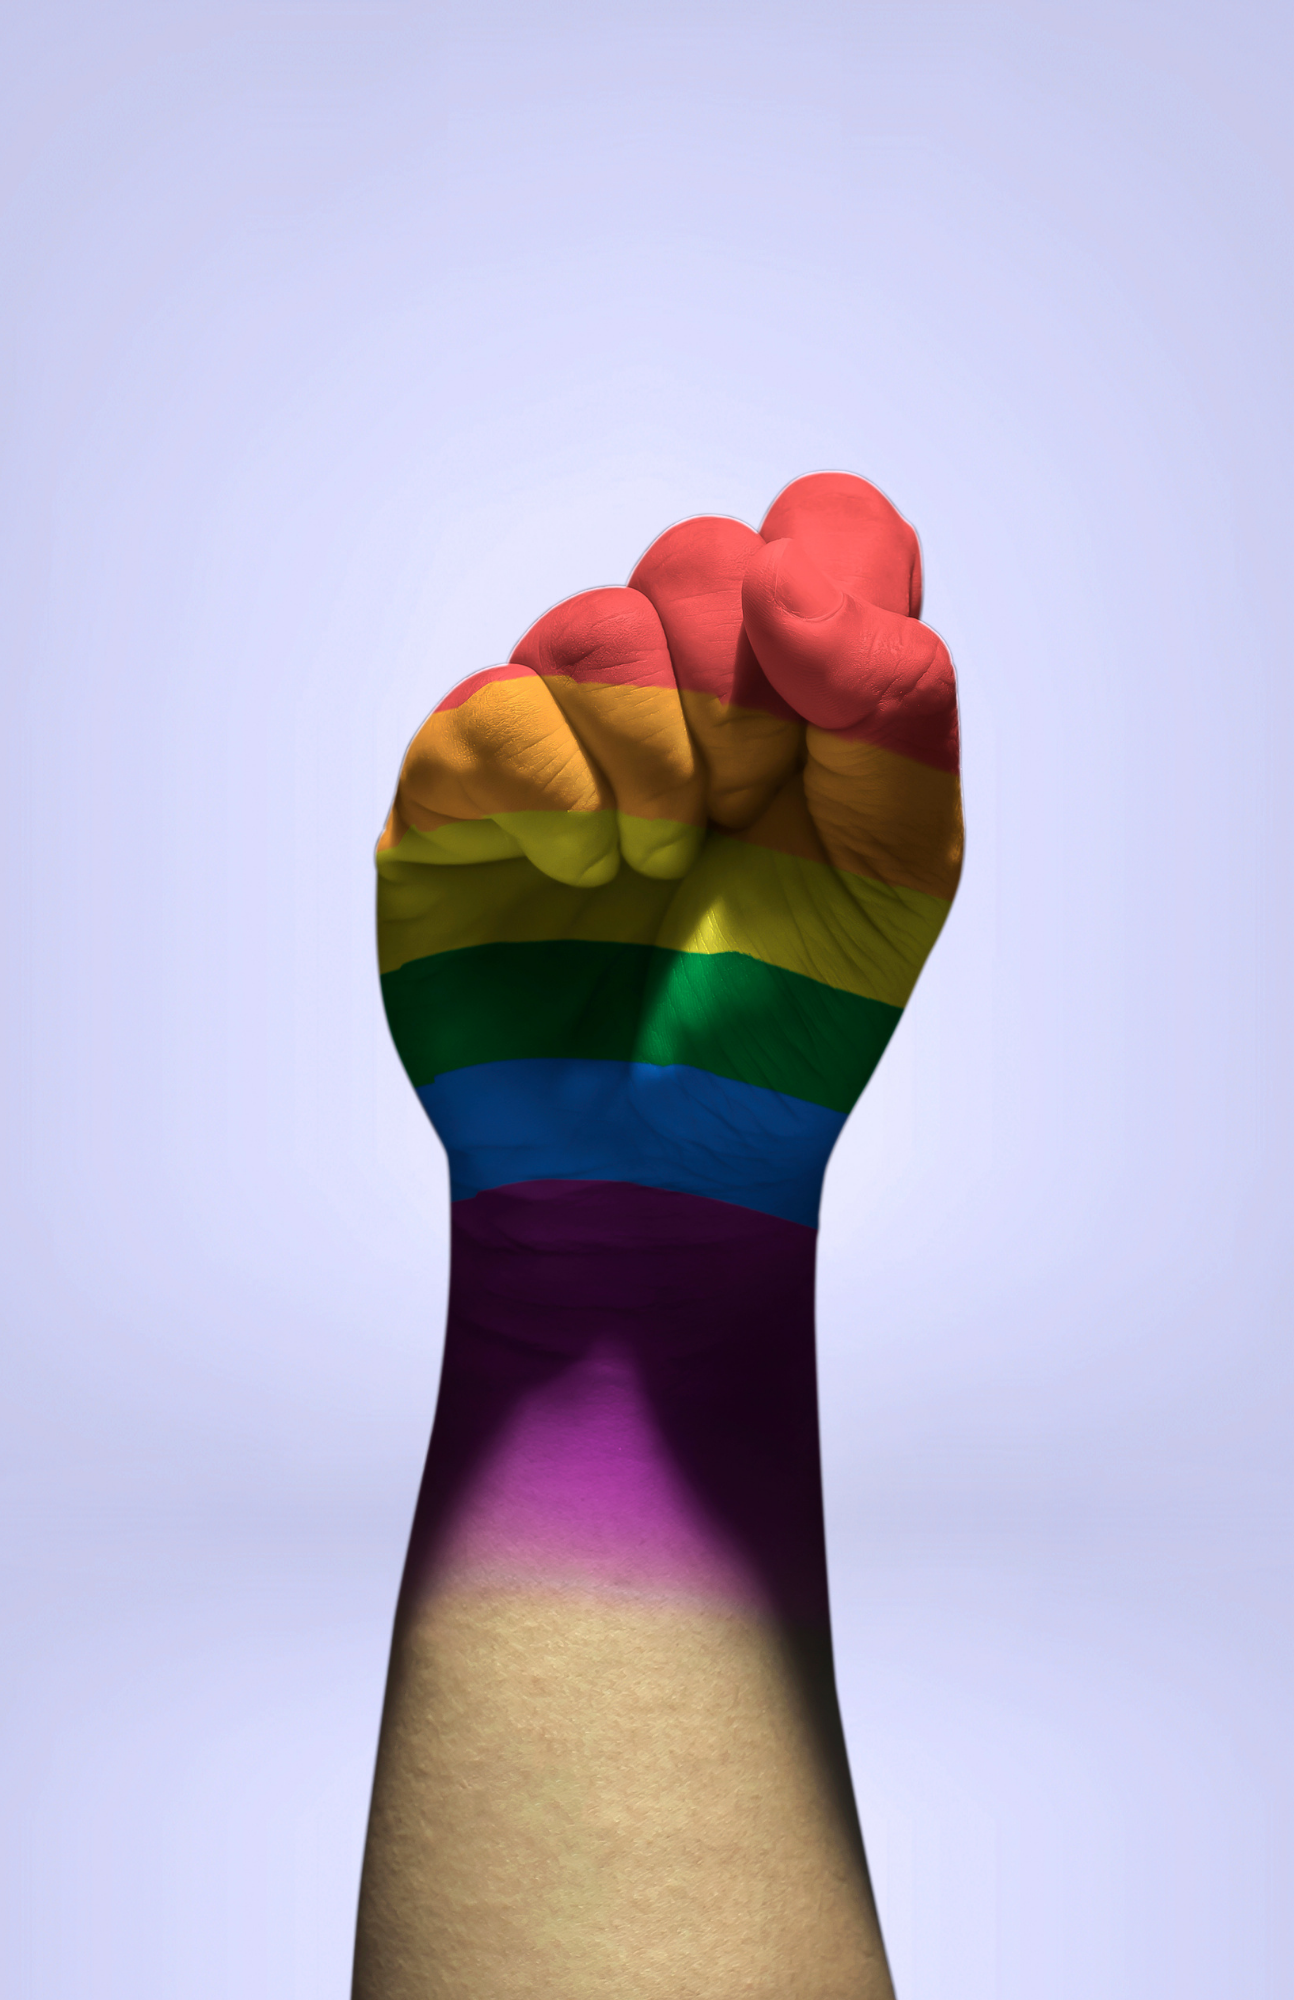 The LGBTQ+ Experience in Foster Care